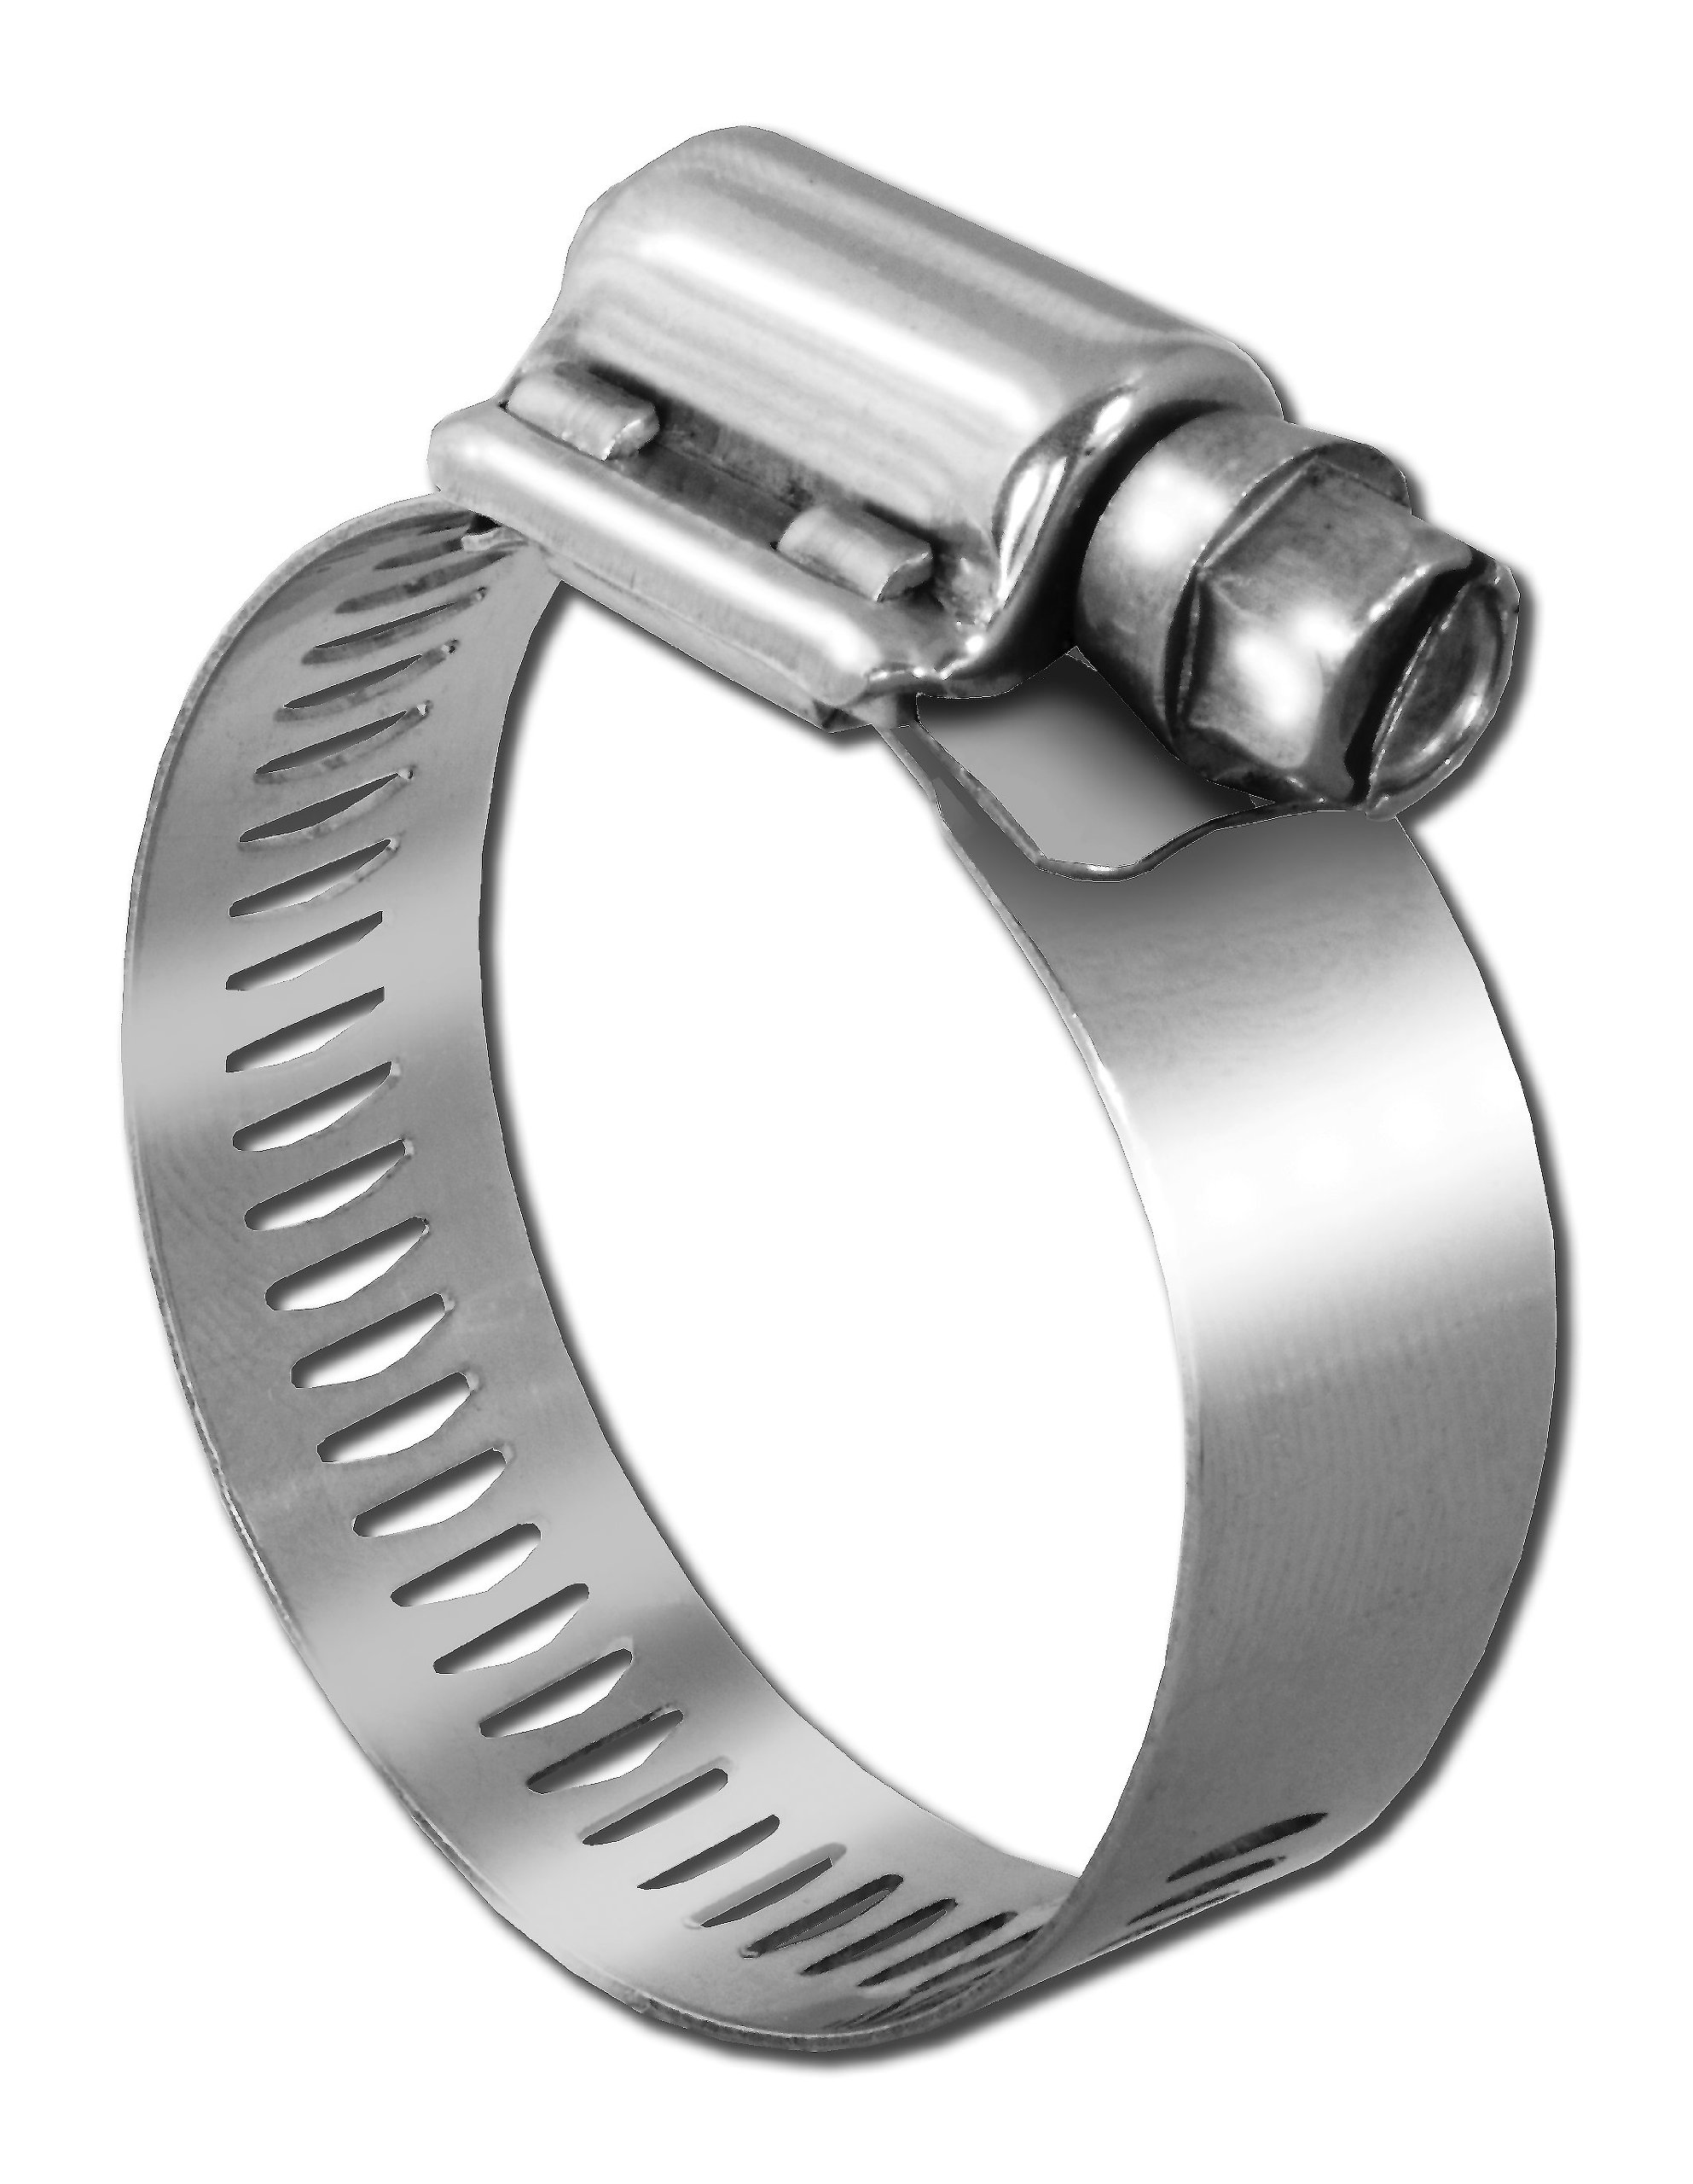 Pro Tie 33614 SAE Size 096 Range 5-1/2-Inch-6-1/2-Inch Very Heavy Duty All Stainless Hose Clamp, 2-Pack